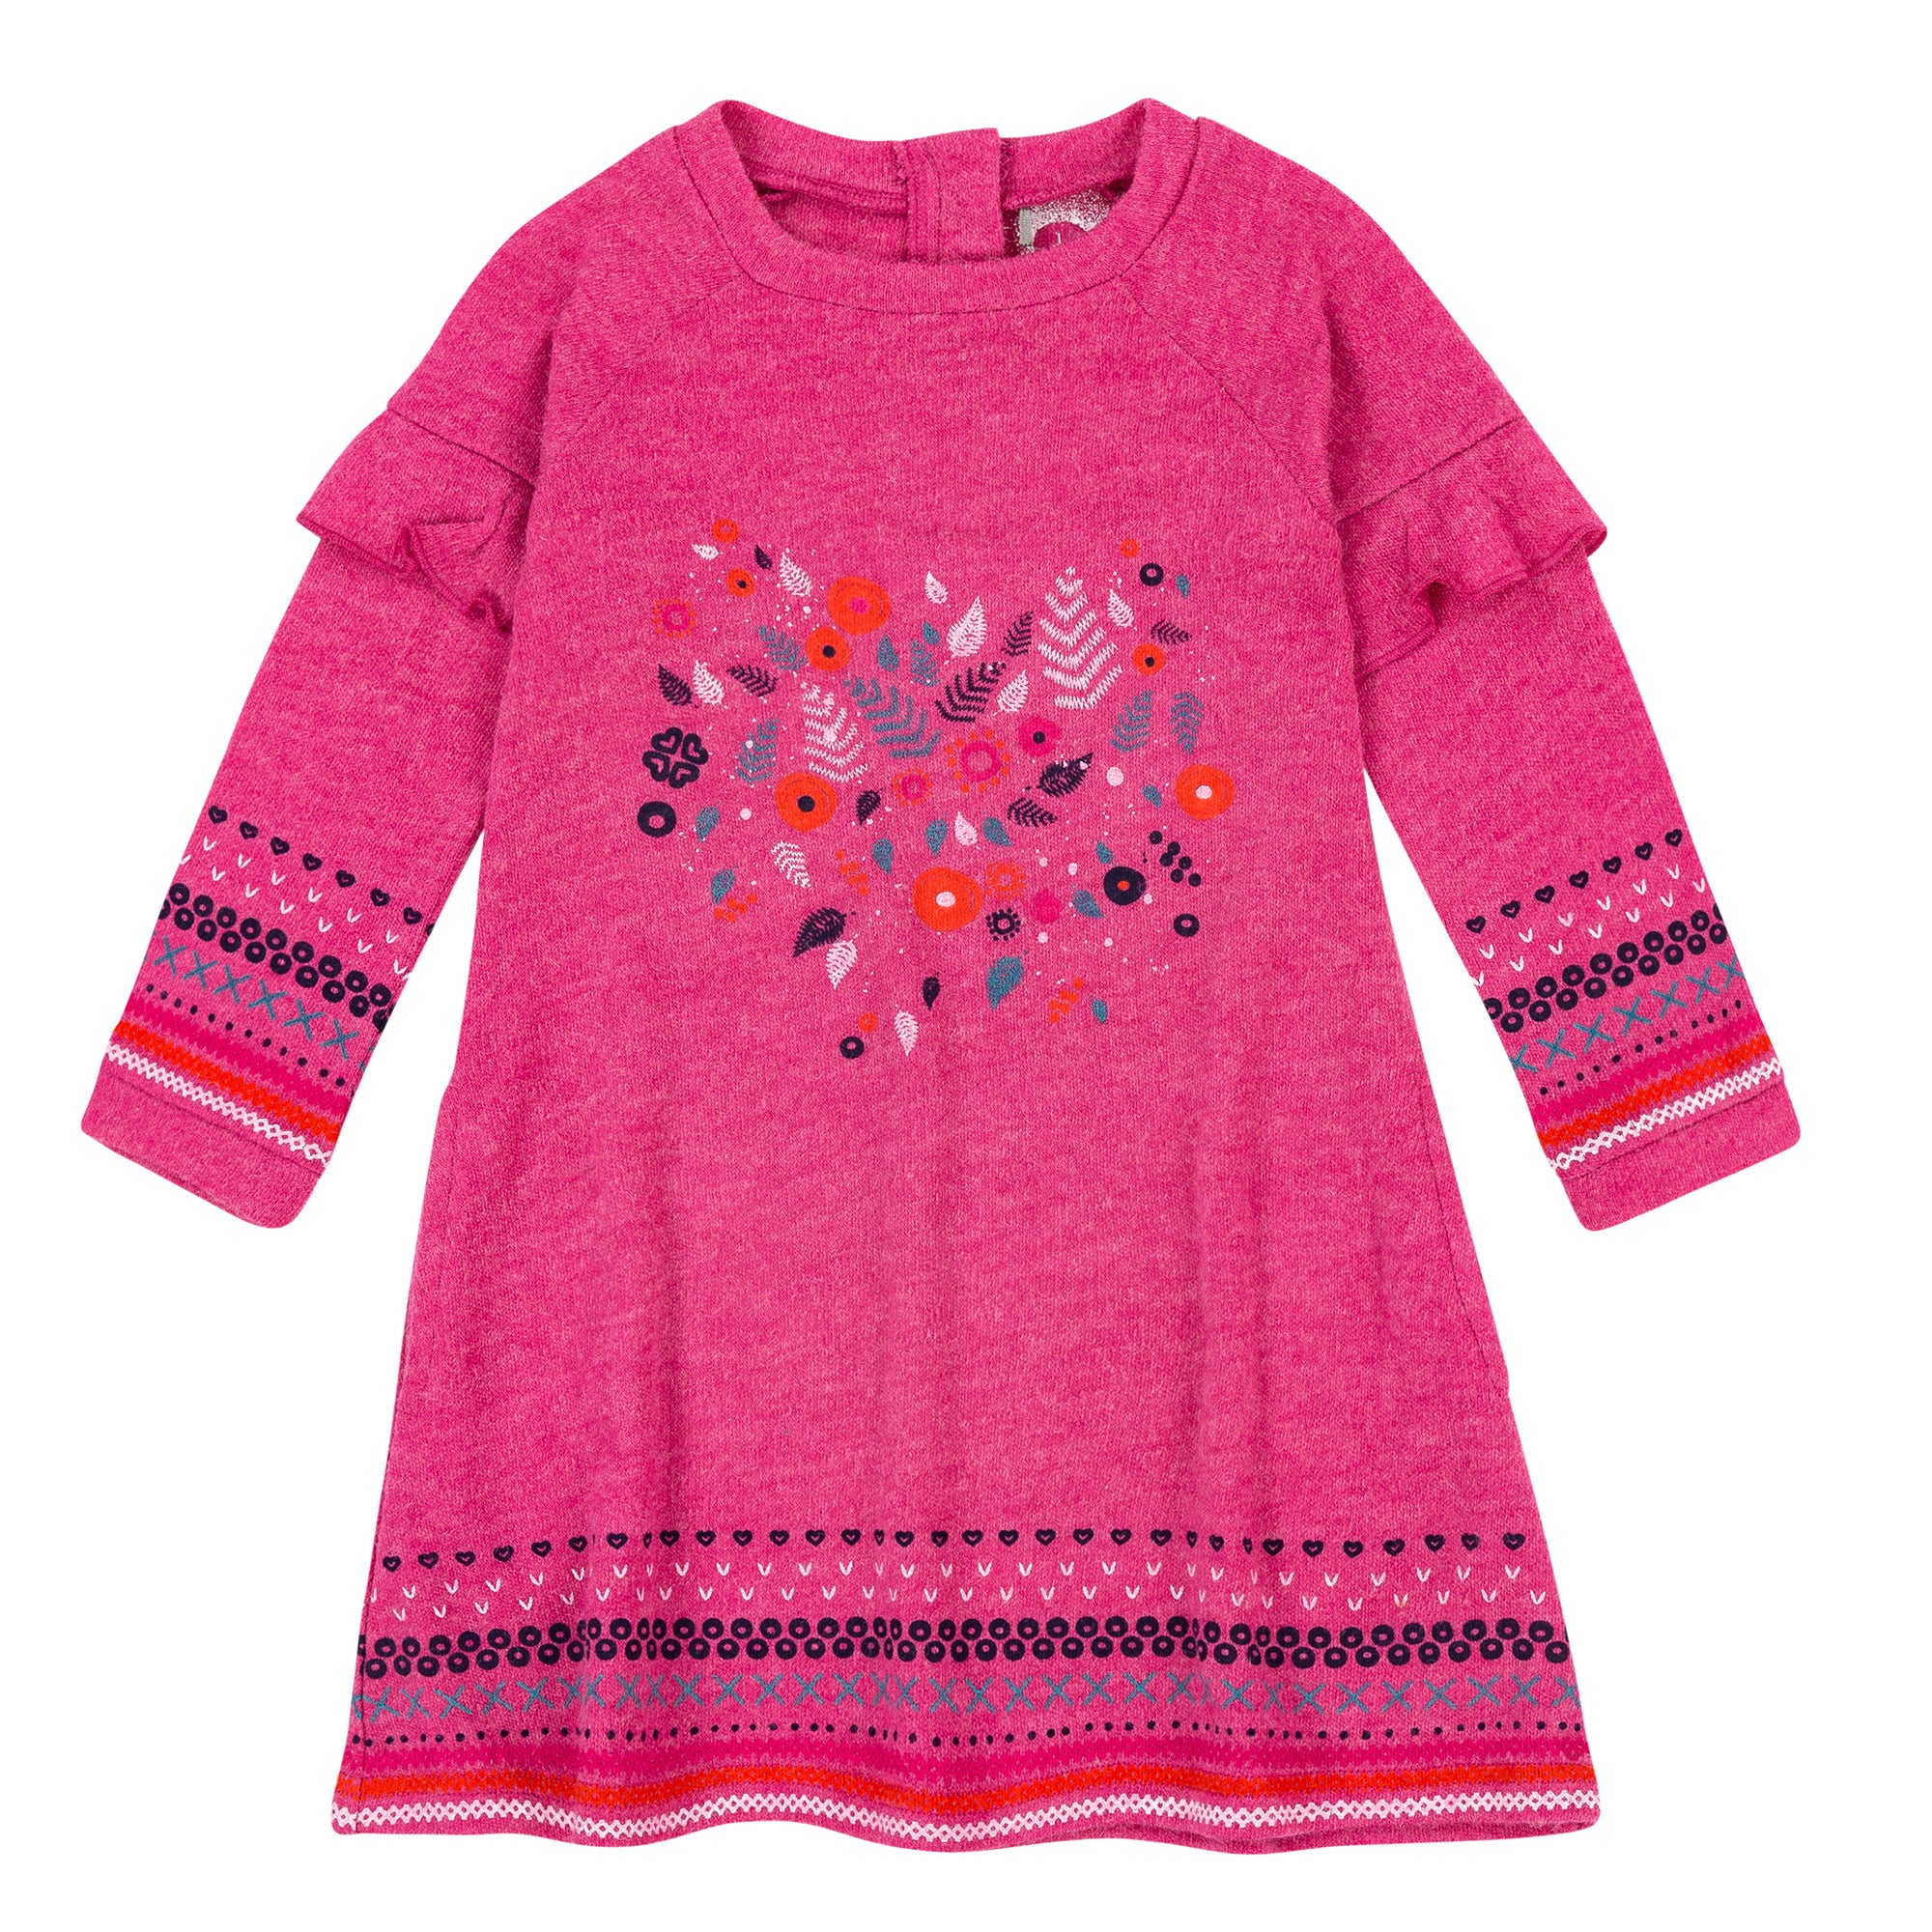 Girls Pink Knit Jersey Dress